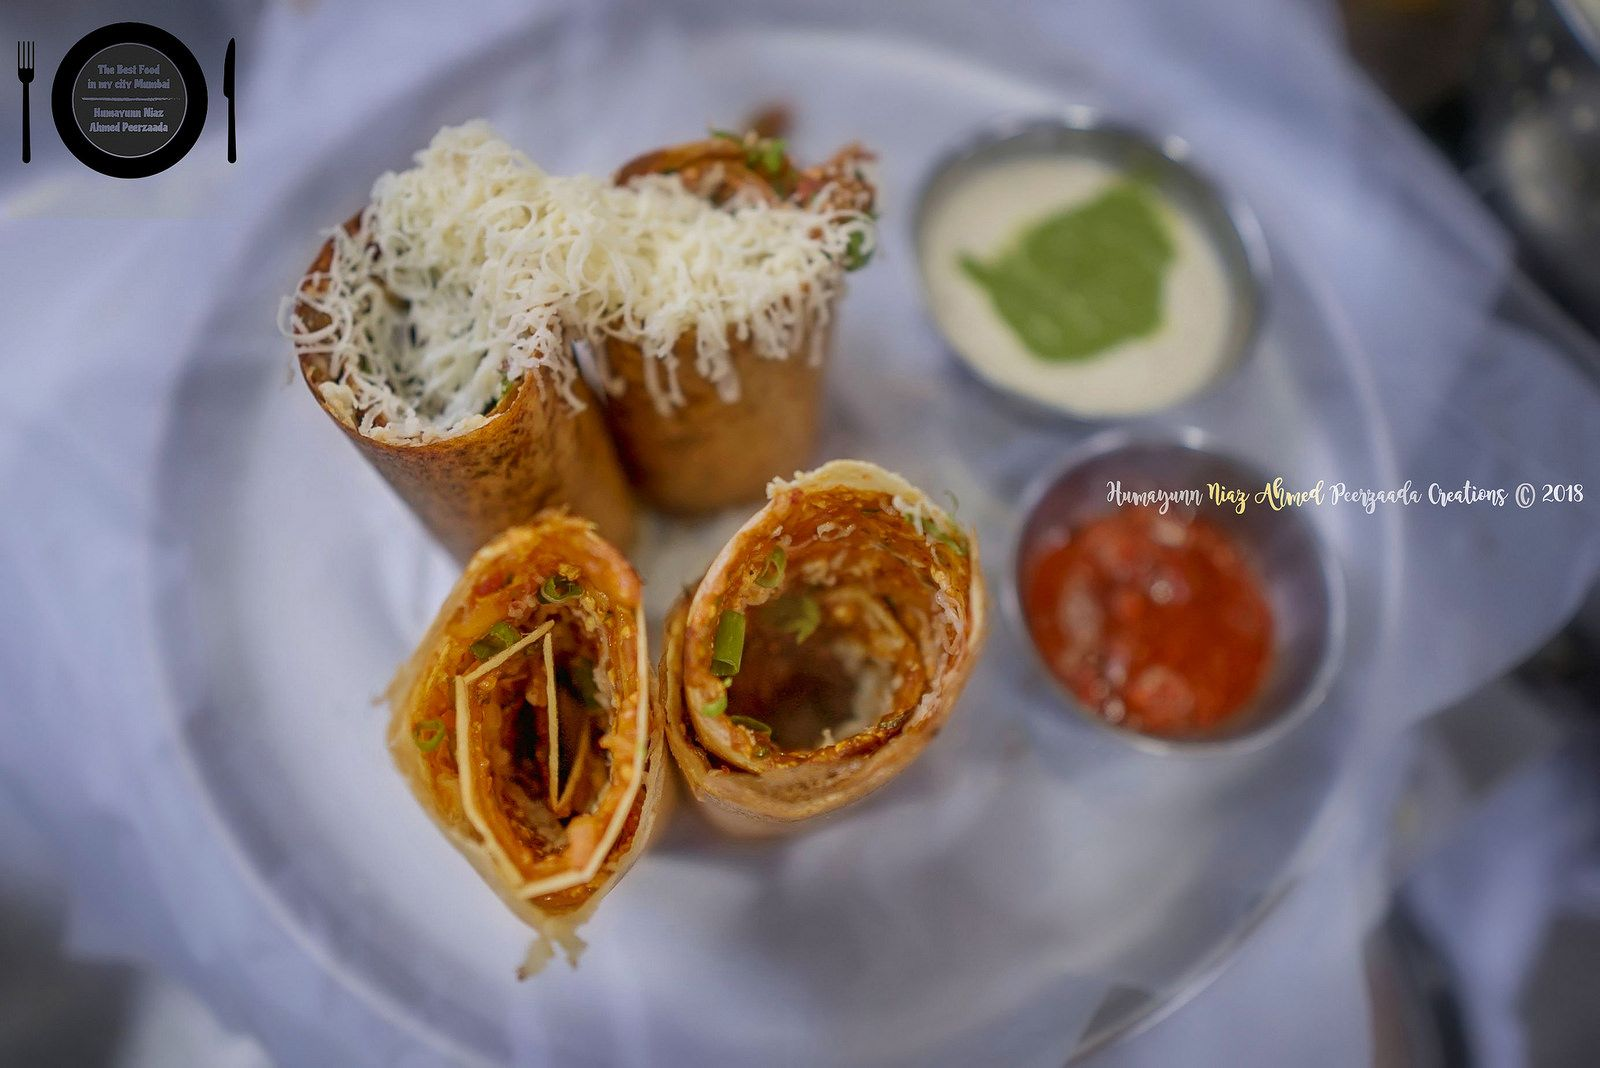 Pin On The Best 100 Food In My City Mumbai Photographs By Humayunn Niaz Ahmed Peerzaada